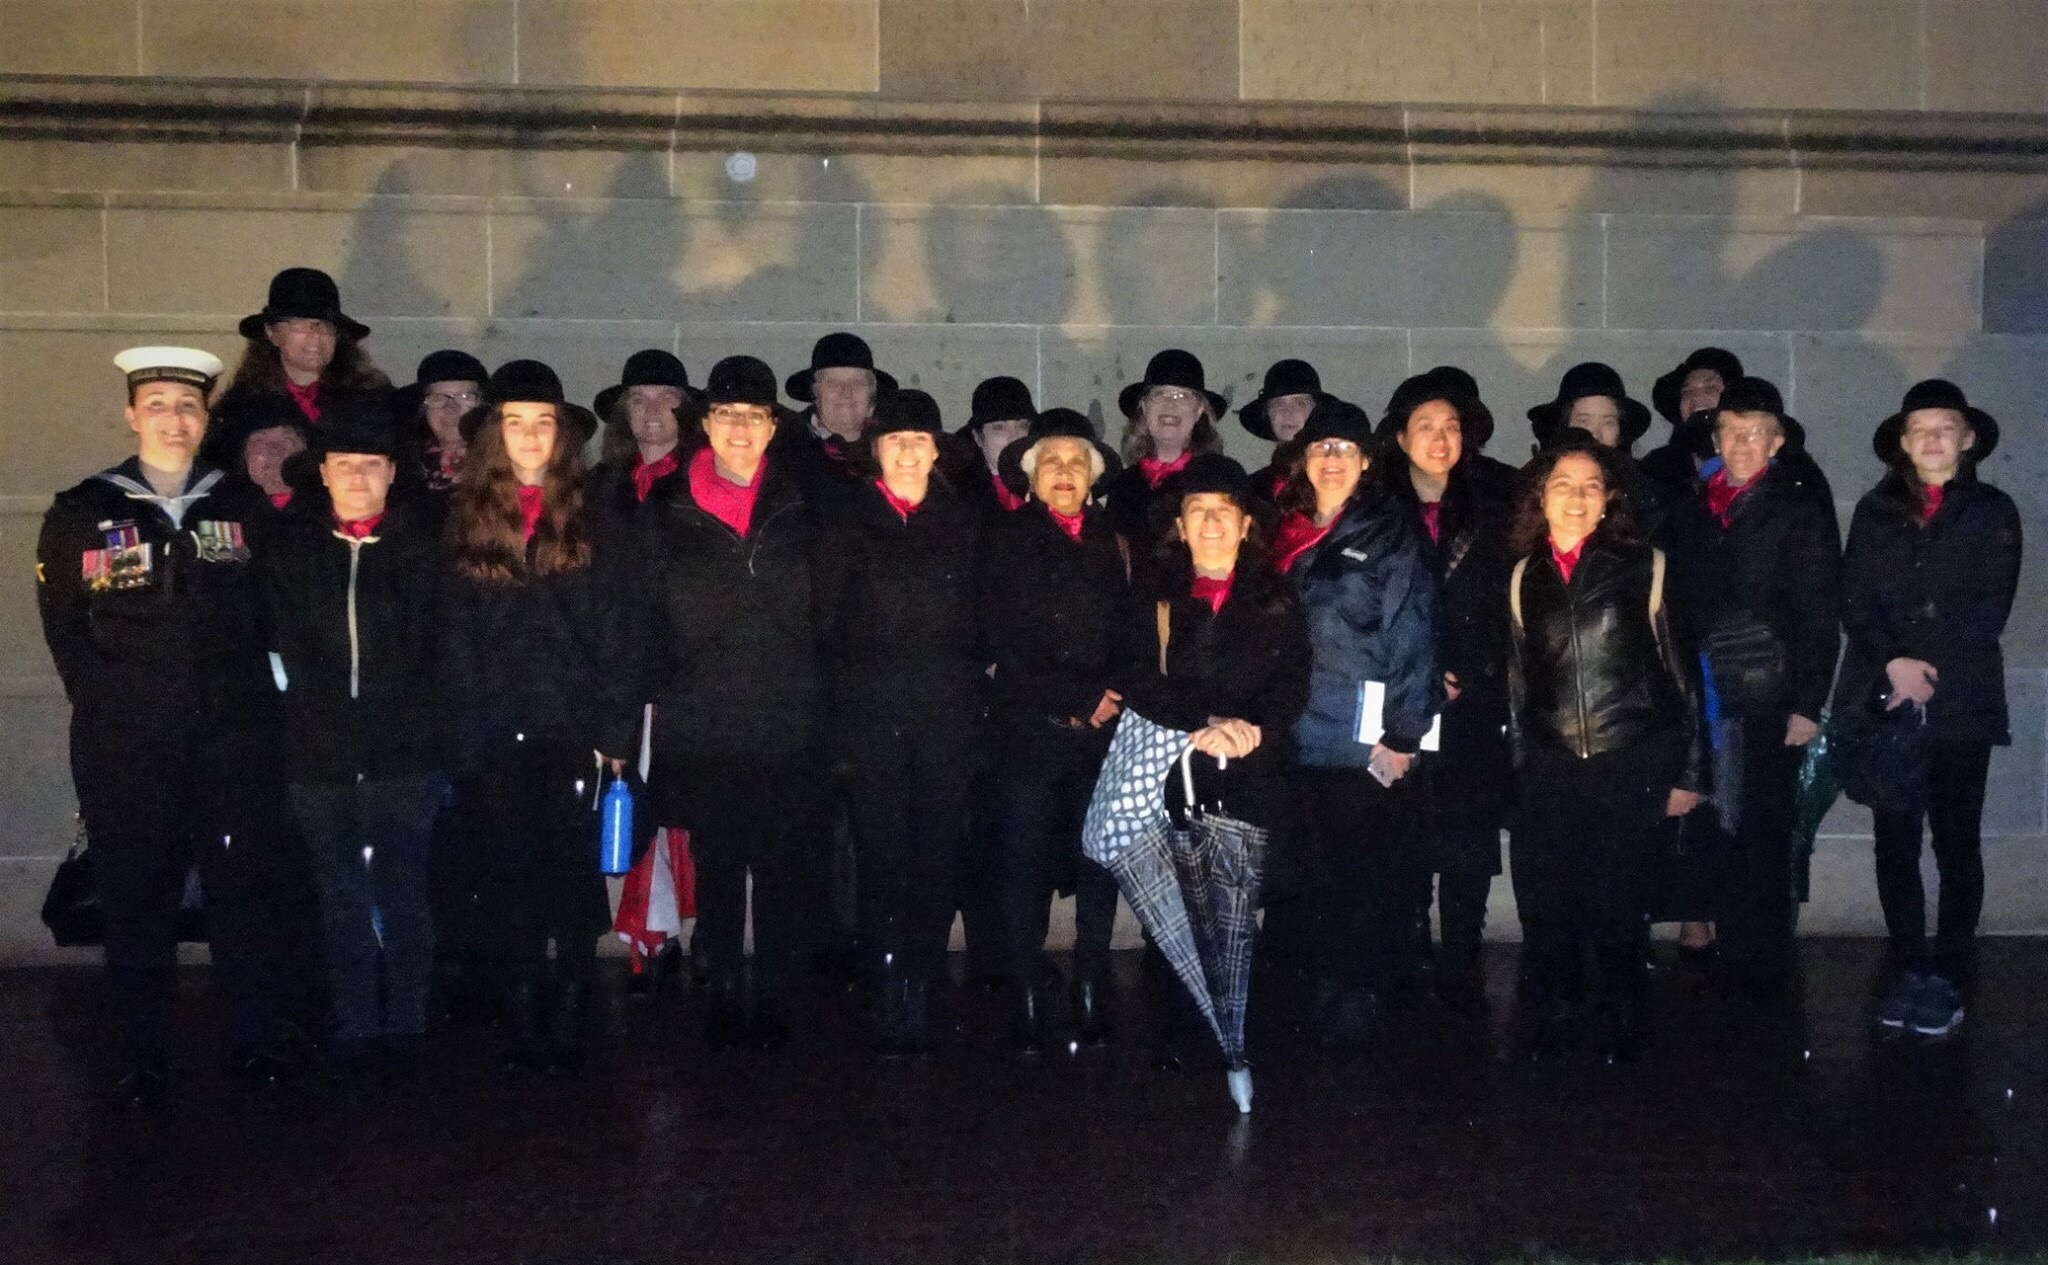 For many years AMWC Canberra has been part of the combined choir at the National Anzac Day Dawn Service at the Australian War Memorial.